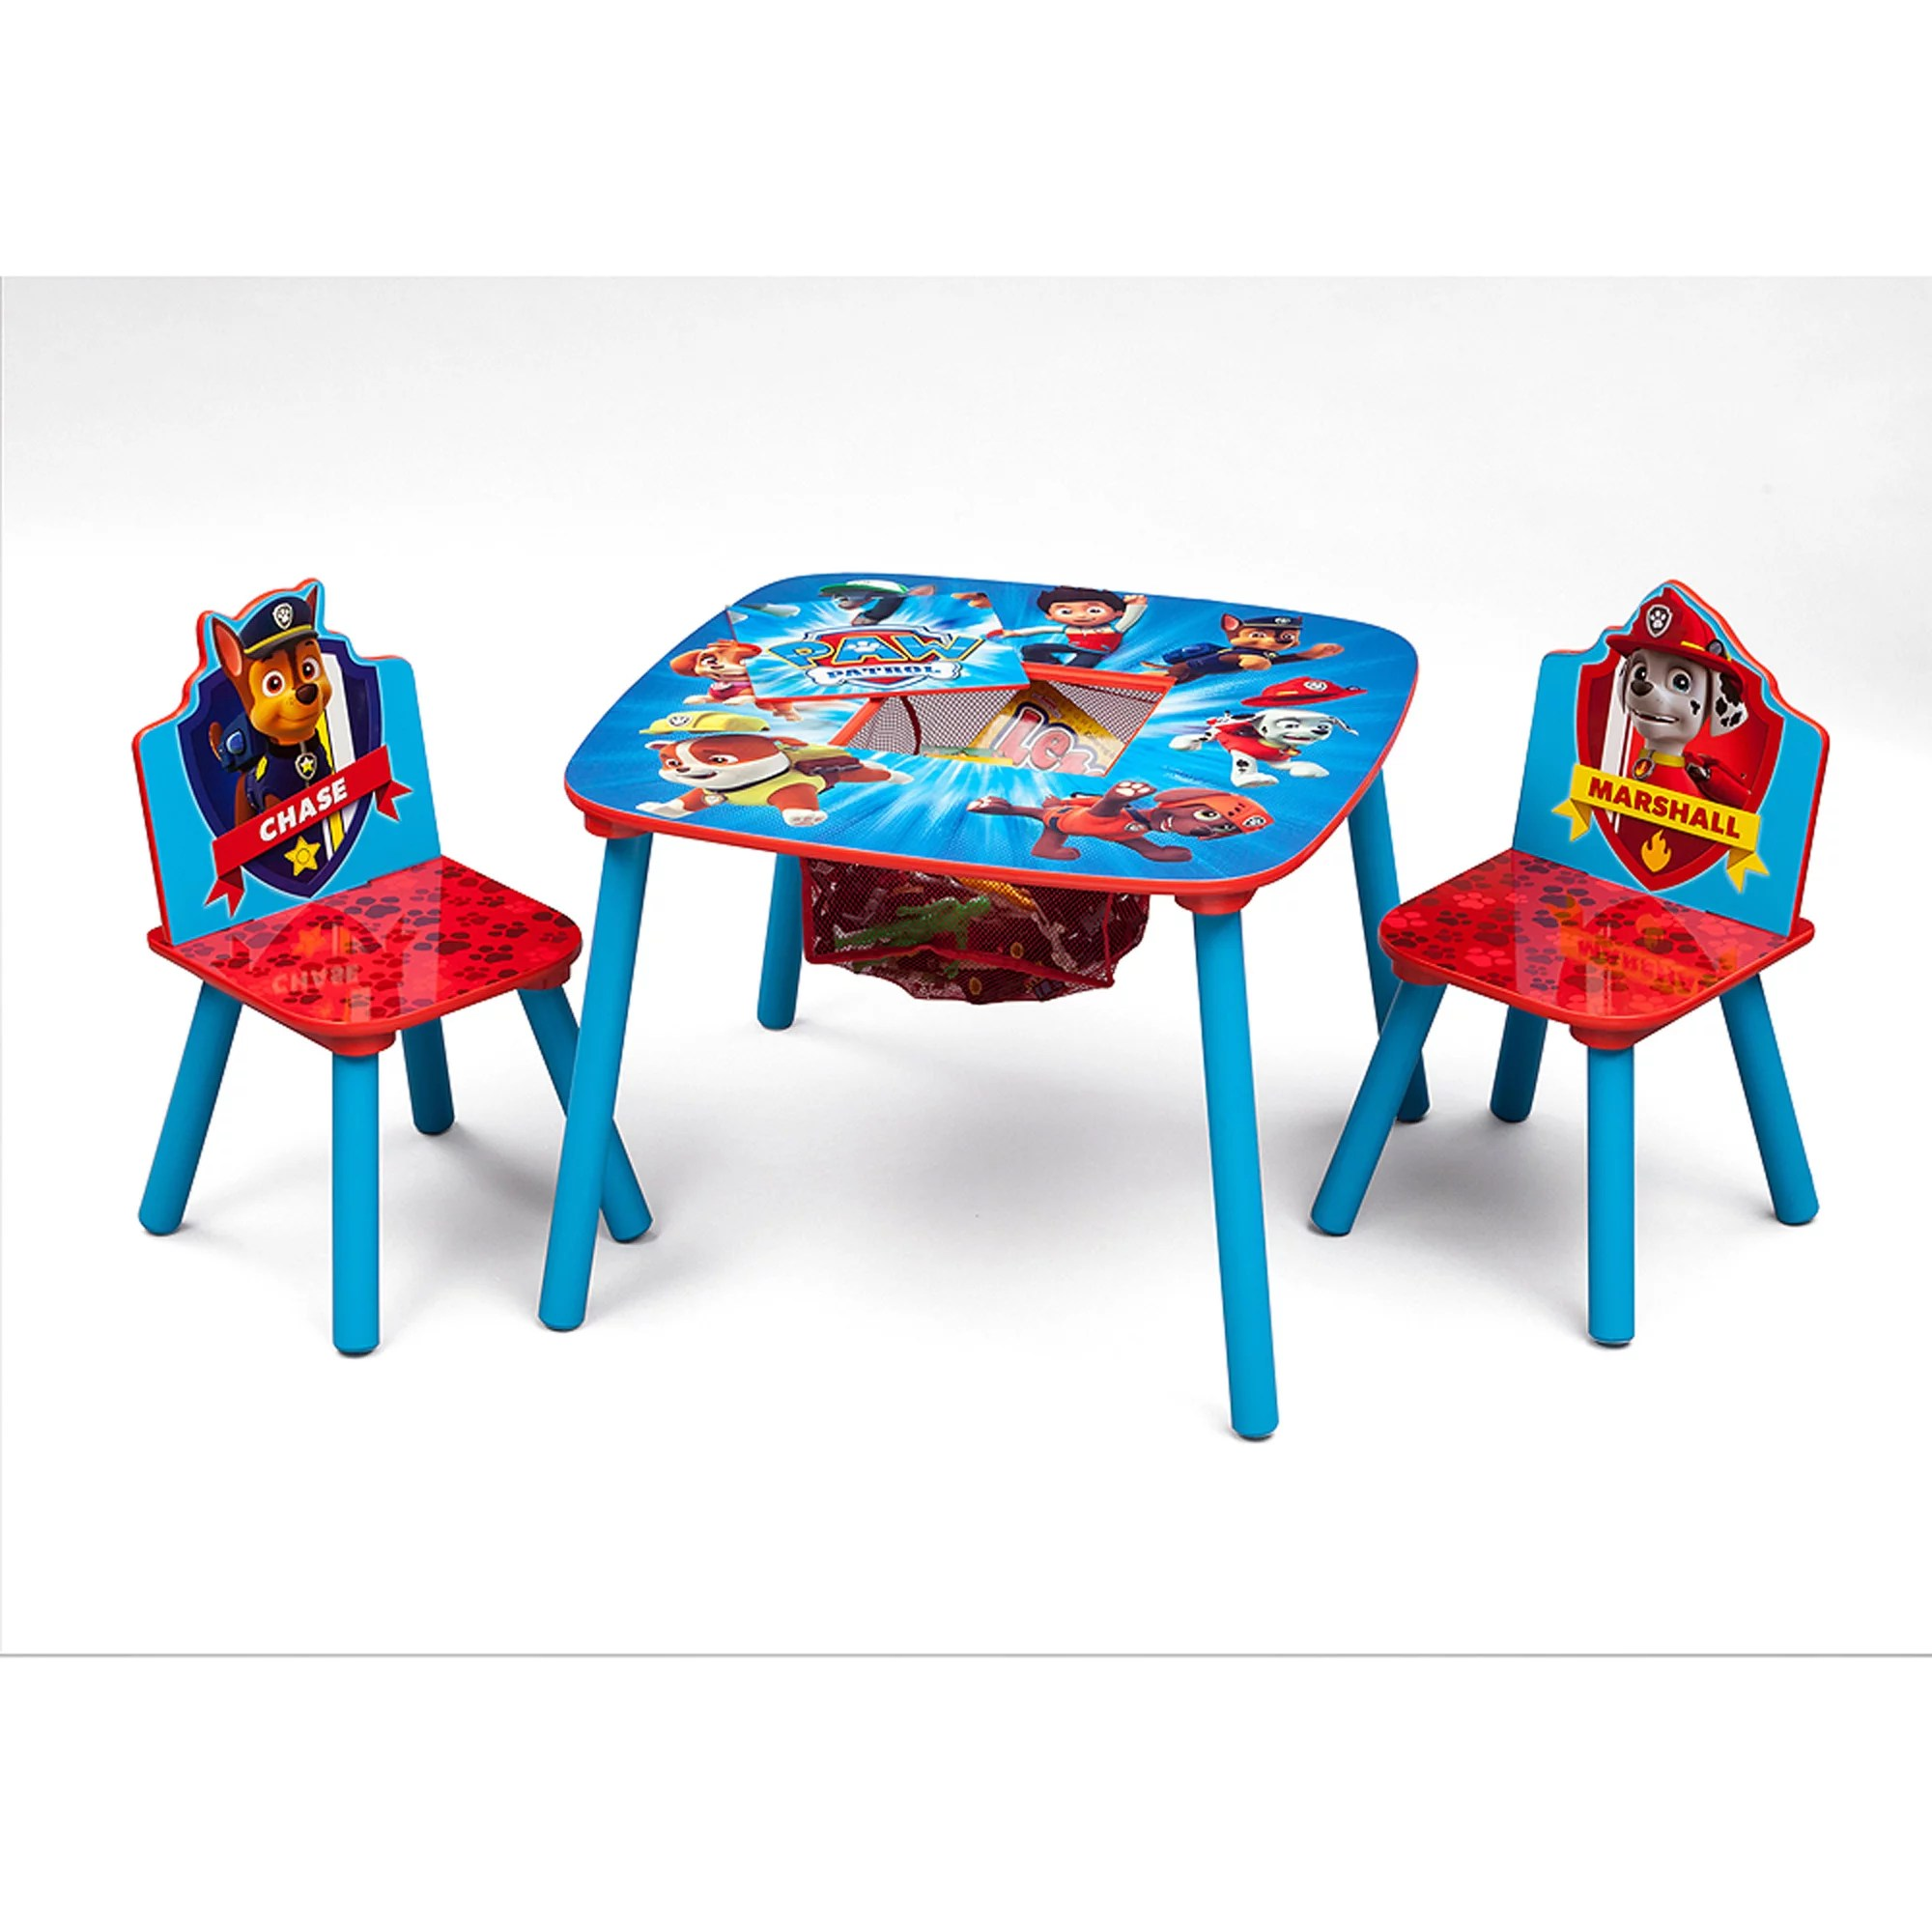 walmart table and chair sets vintage styles nick jr paw patrol wood kids storage chairs set by delta children com